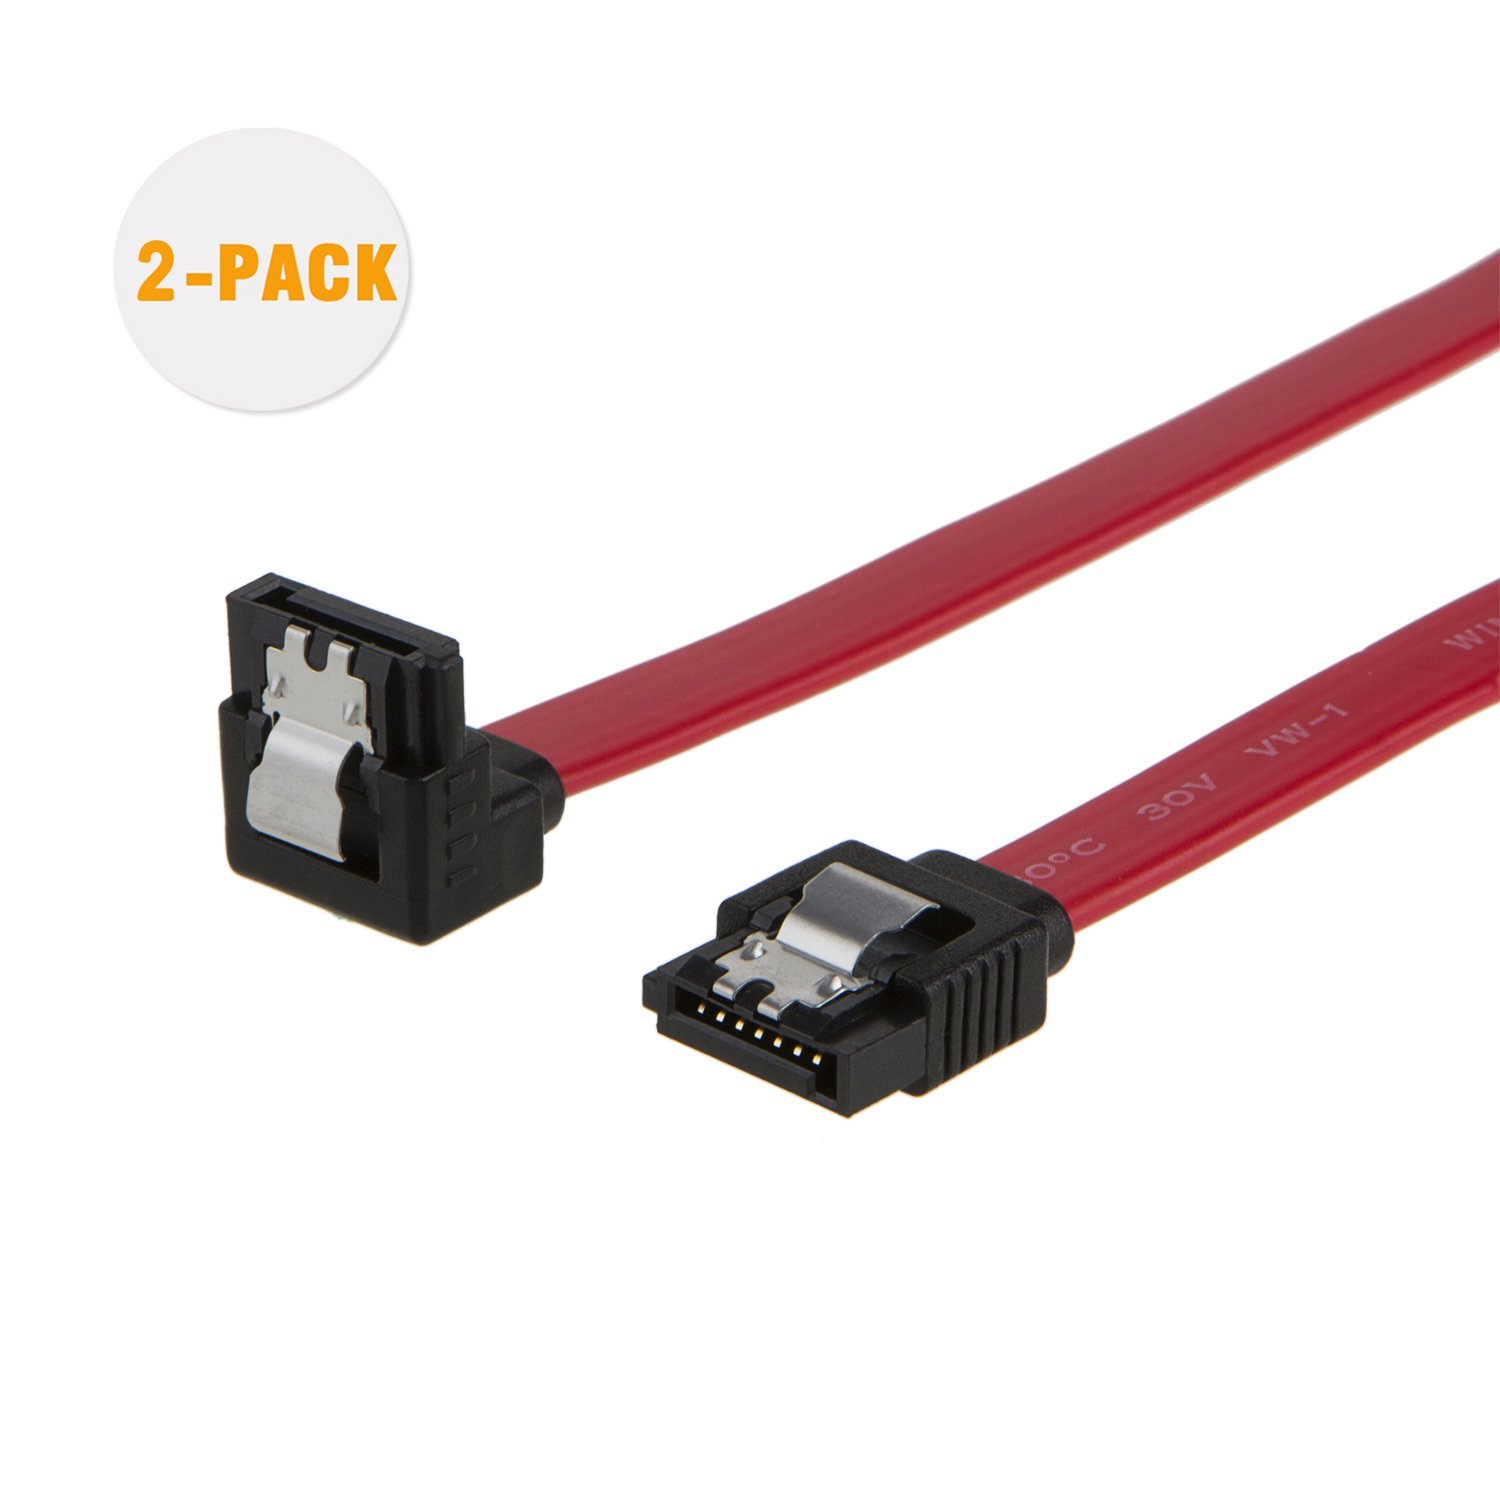 SATA III Cable, CableCreation [5-Pack] 18-inch SATA III 6.0 Gbps 7pin Female to Female Data Cable with Locking Latch, Red CS0085